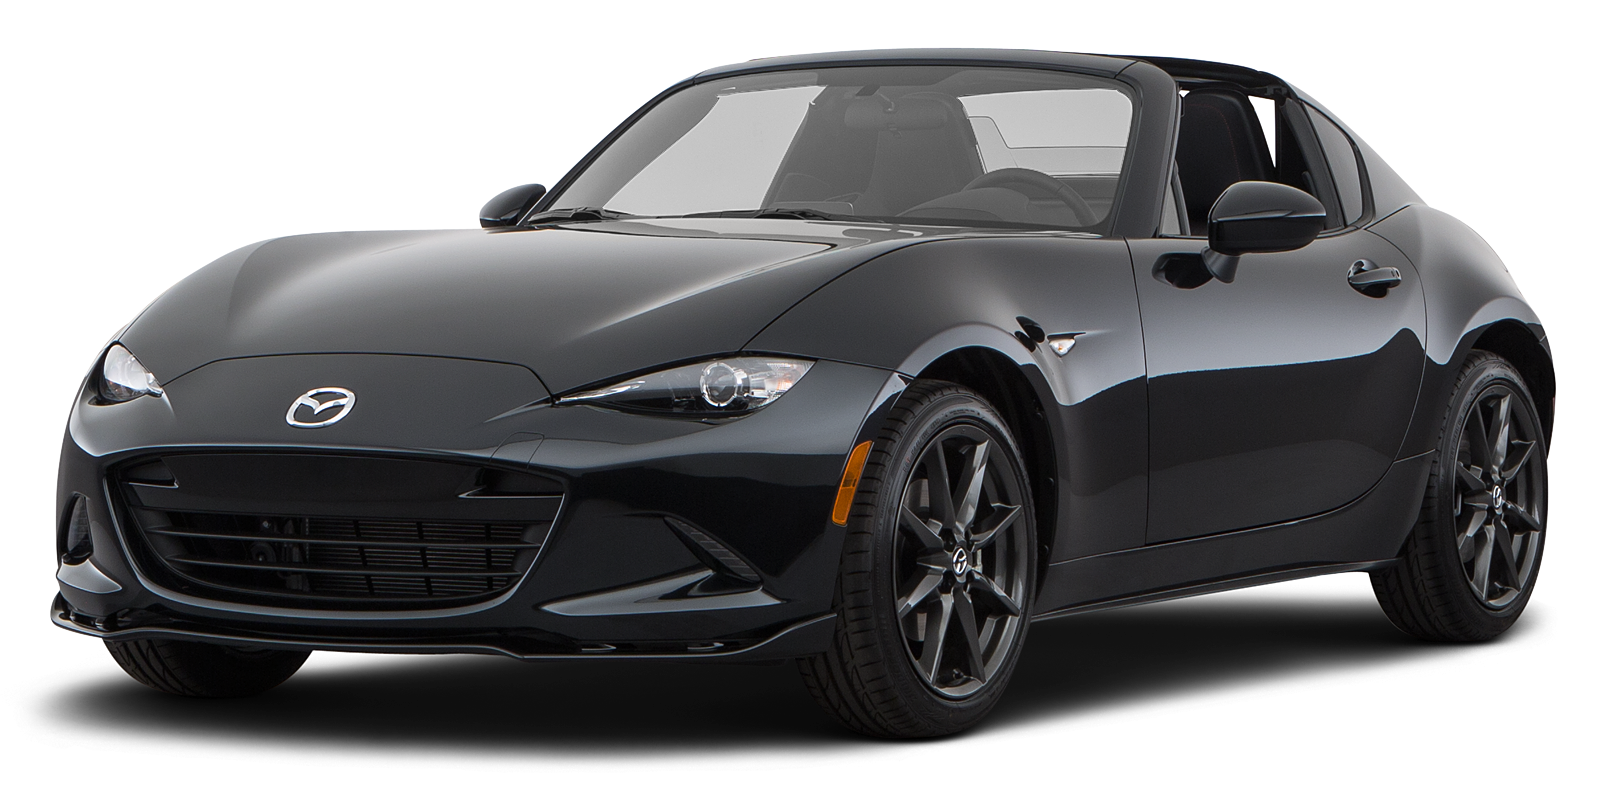 2018 mazda mx 5 rf incentives specials offers in surrey bc. Black Bedroom Furniture Sets. Home Design Ideas